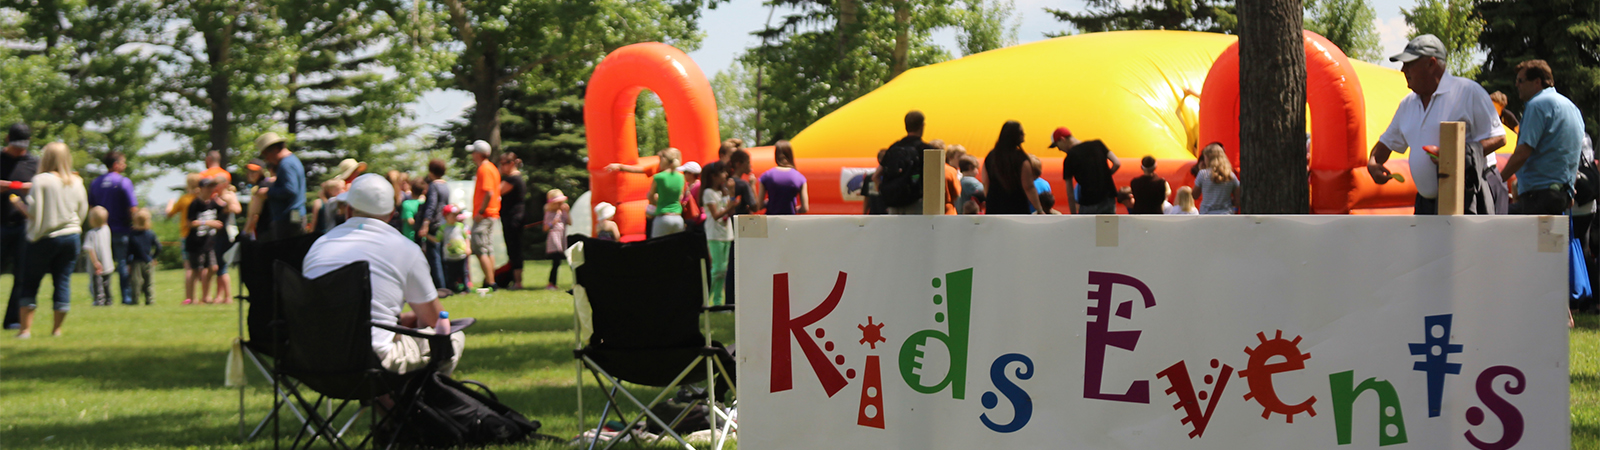 Kids-Events-01